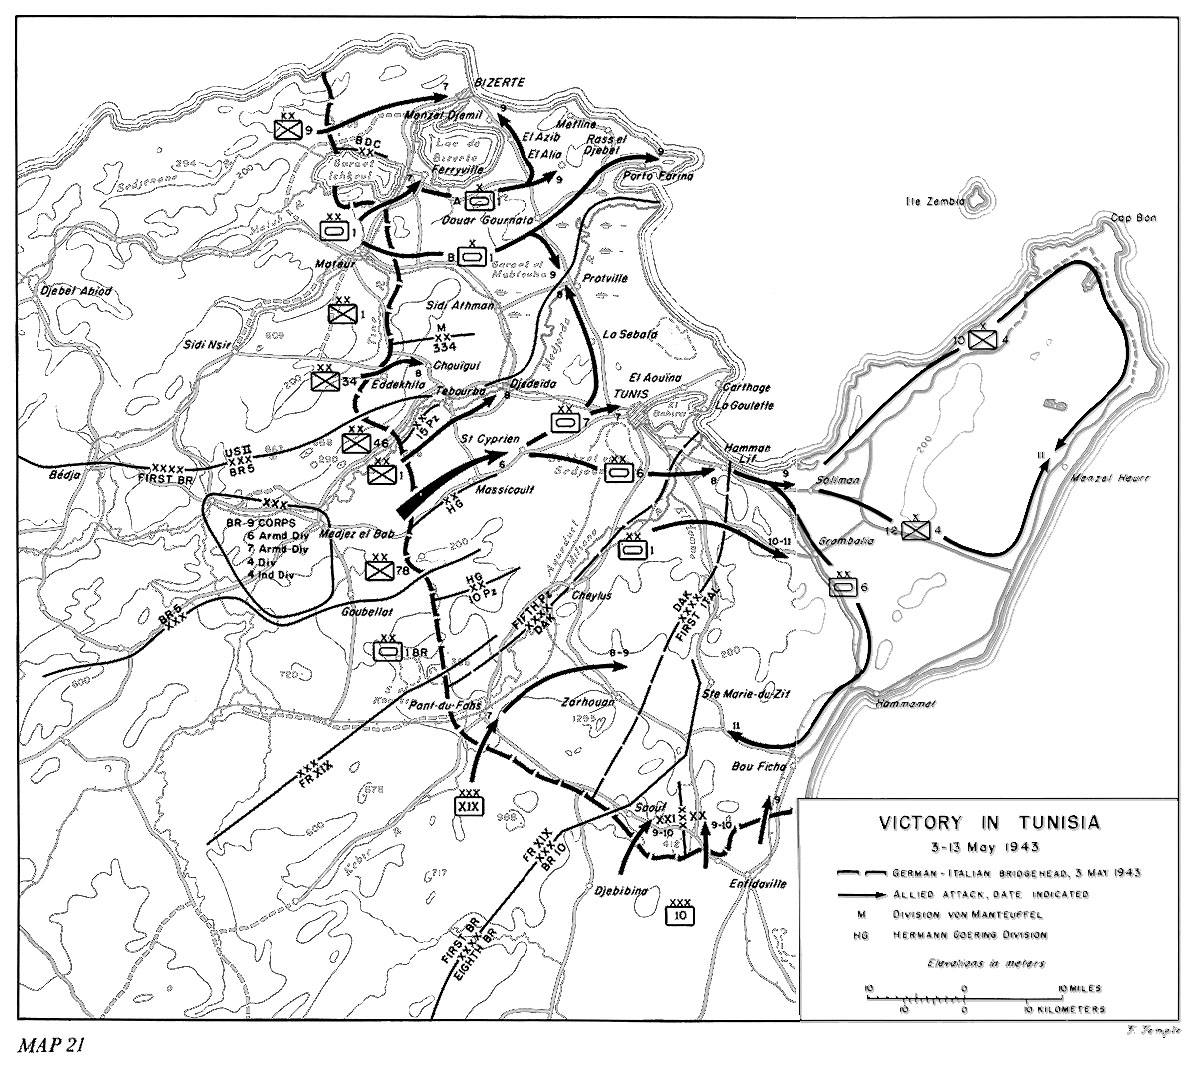 Map of Allied operations in Tunisia, 3-13 May 1943 (US Army Center of Military History)